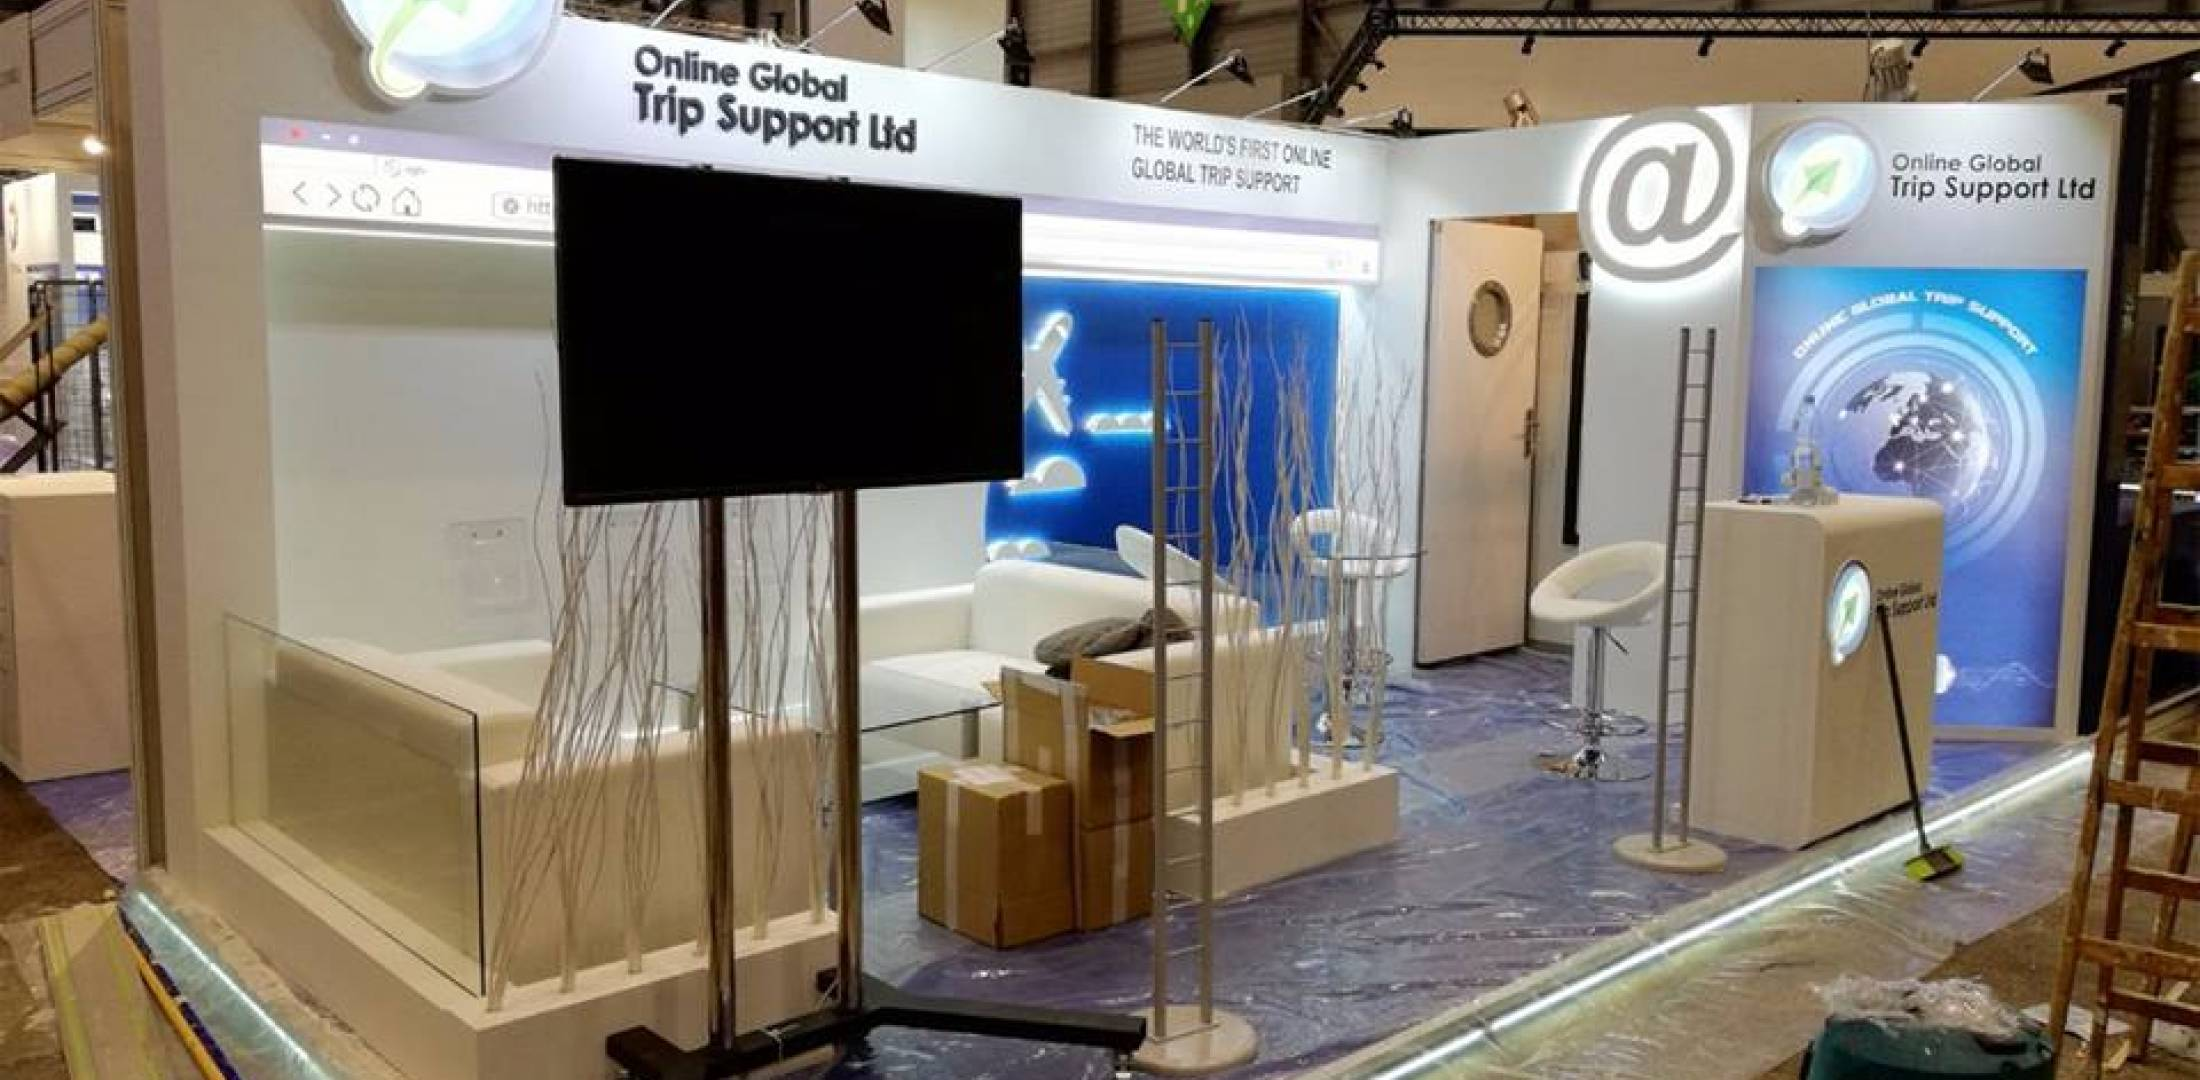 Global Trip Support booth at EBACE 2018